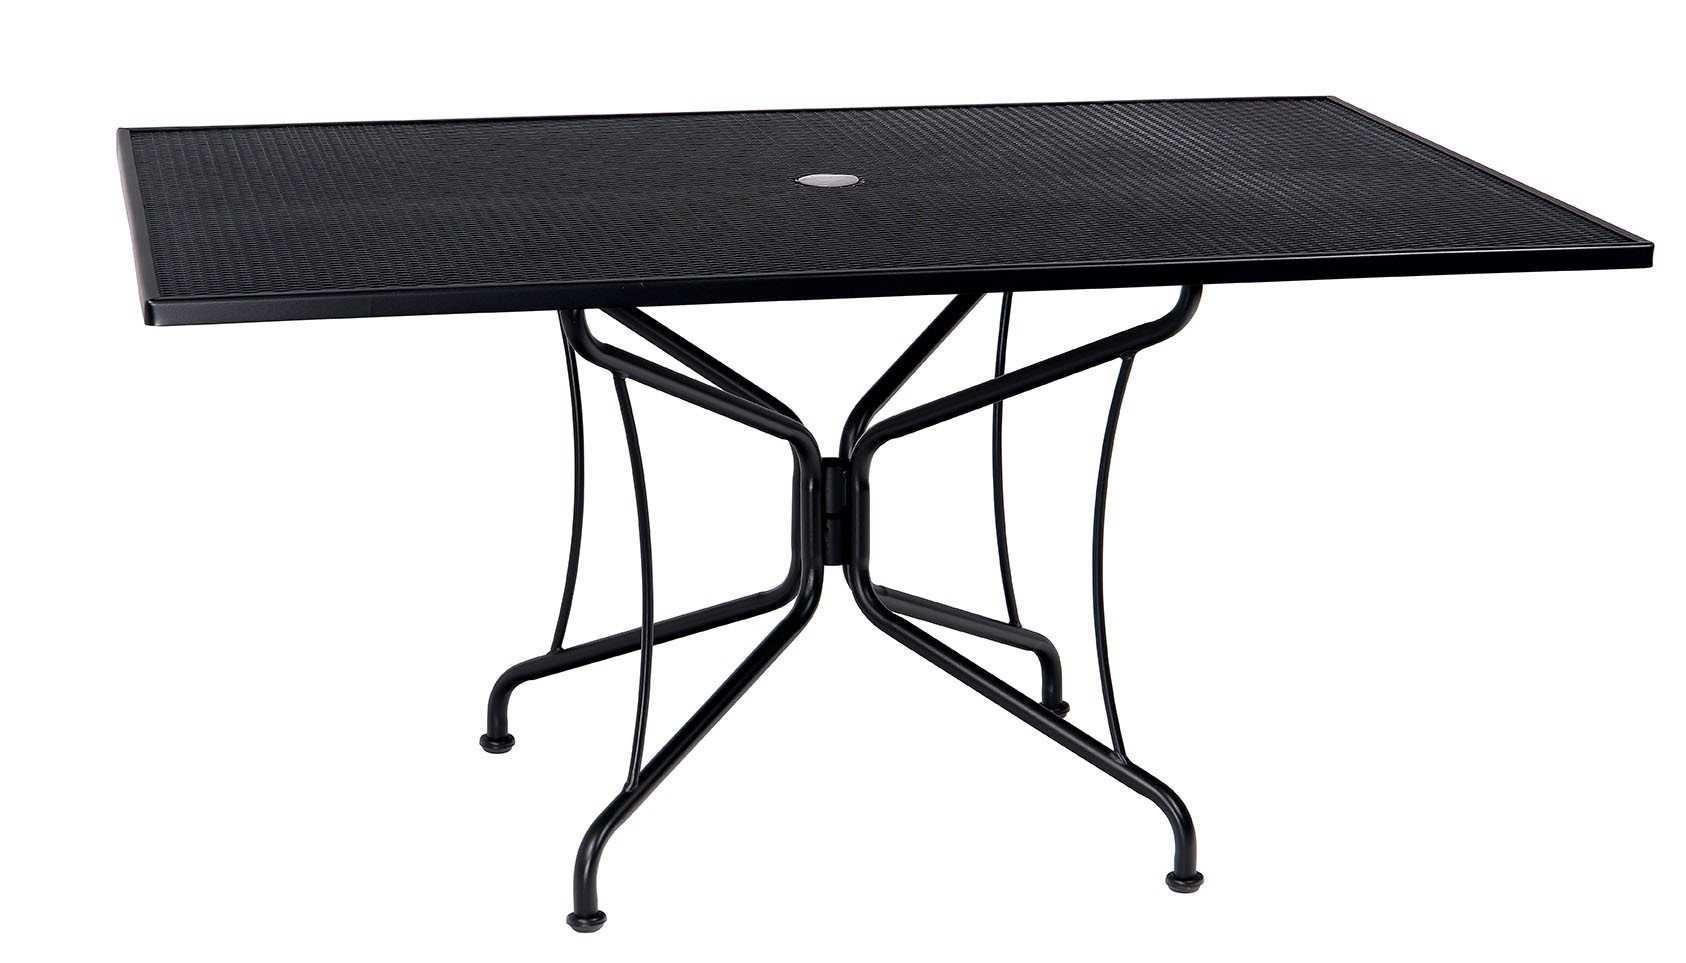 woodard wrought iron 84 x 42 rectangular 8 spoke table with umbrella hole wr190309. Black Bedroom Furniture Sets. Home Design Ideas